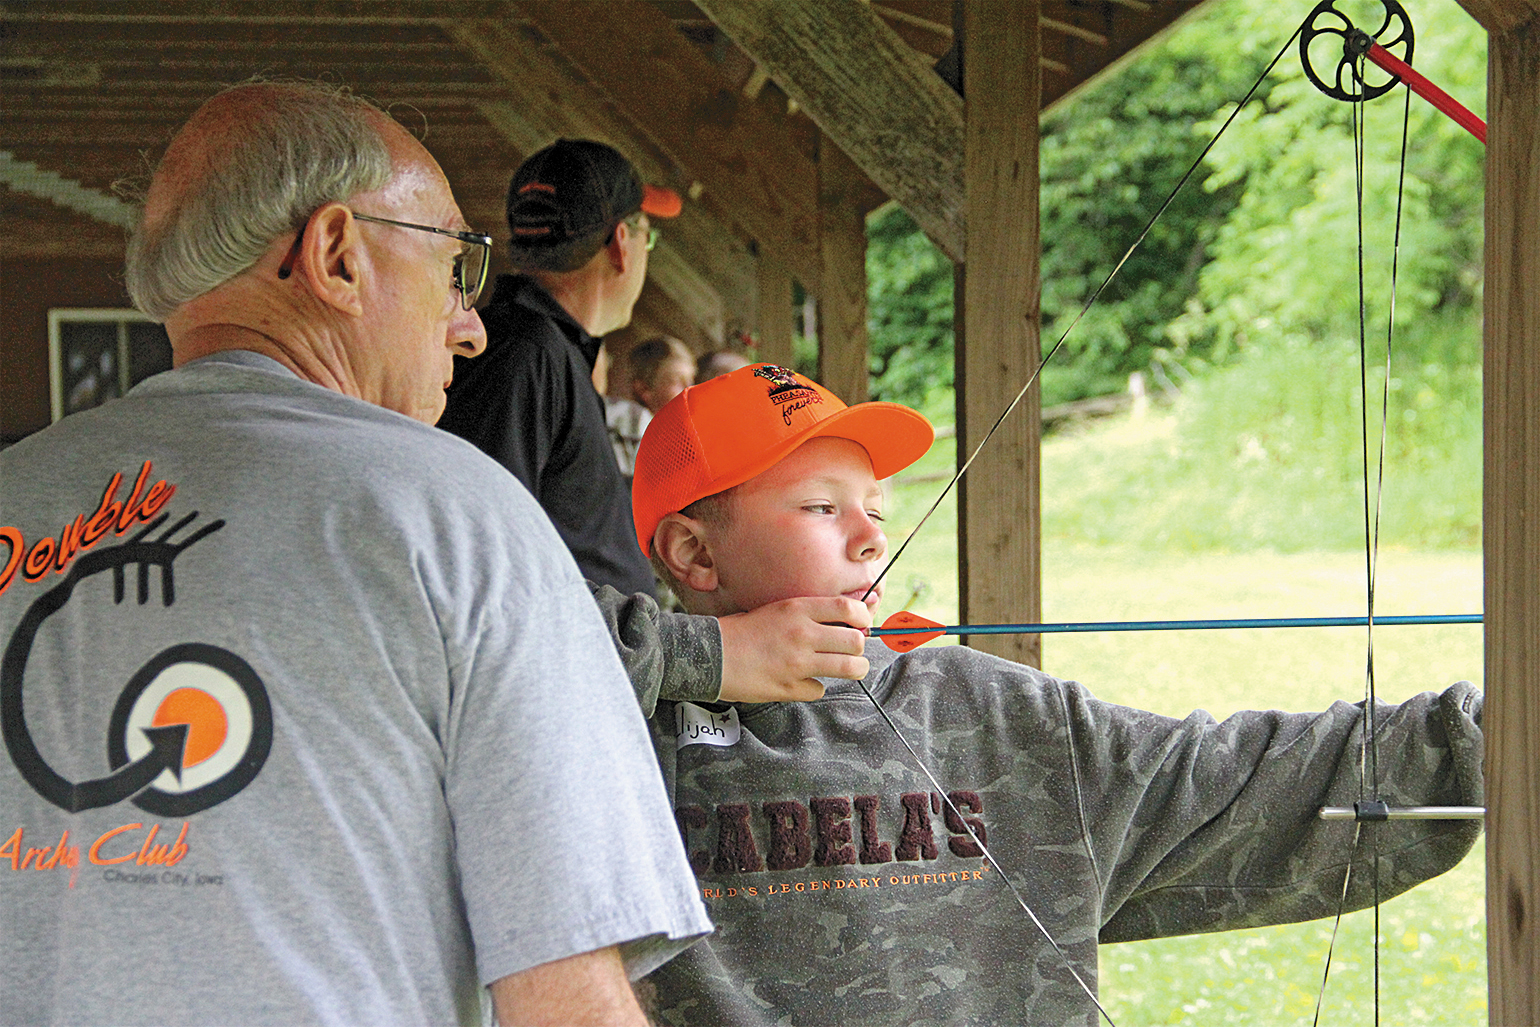 Pheasants Forever invites youth outside